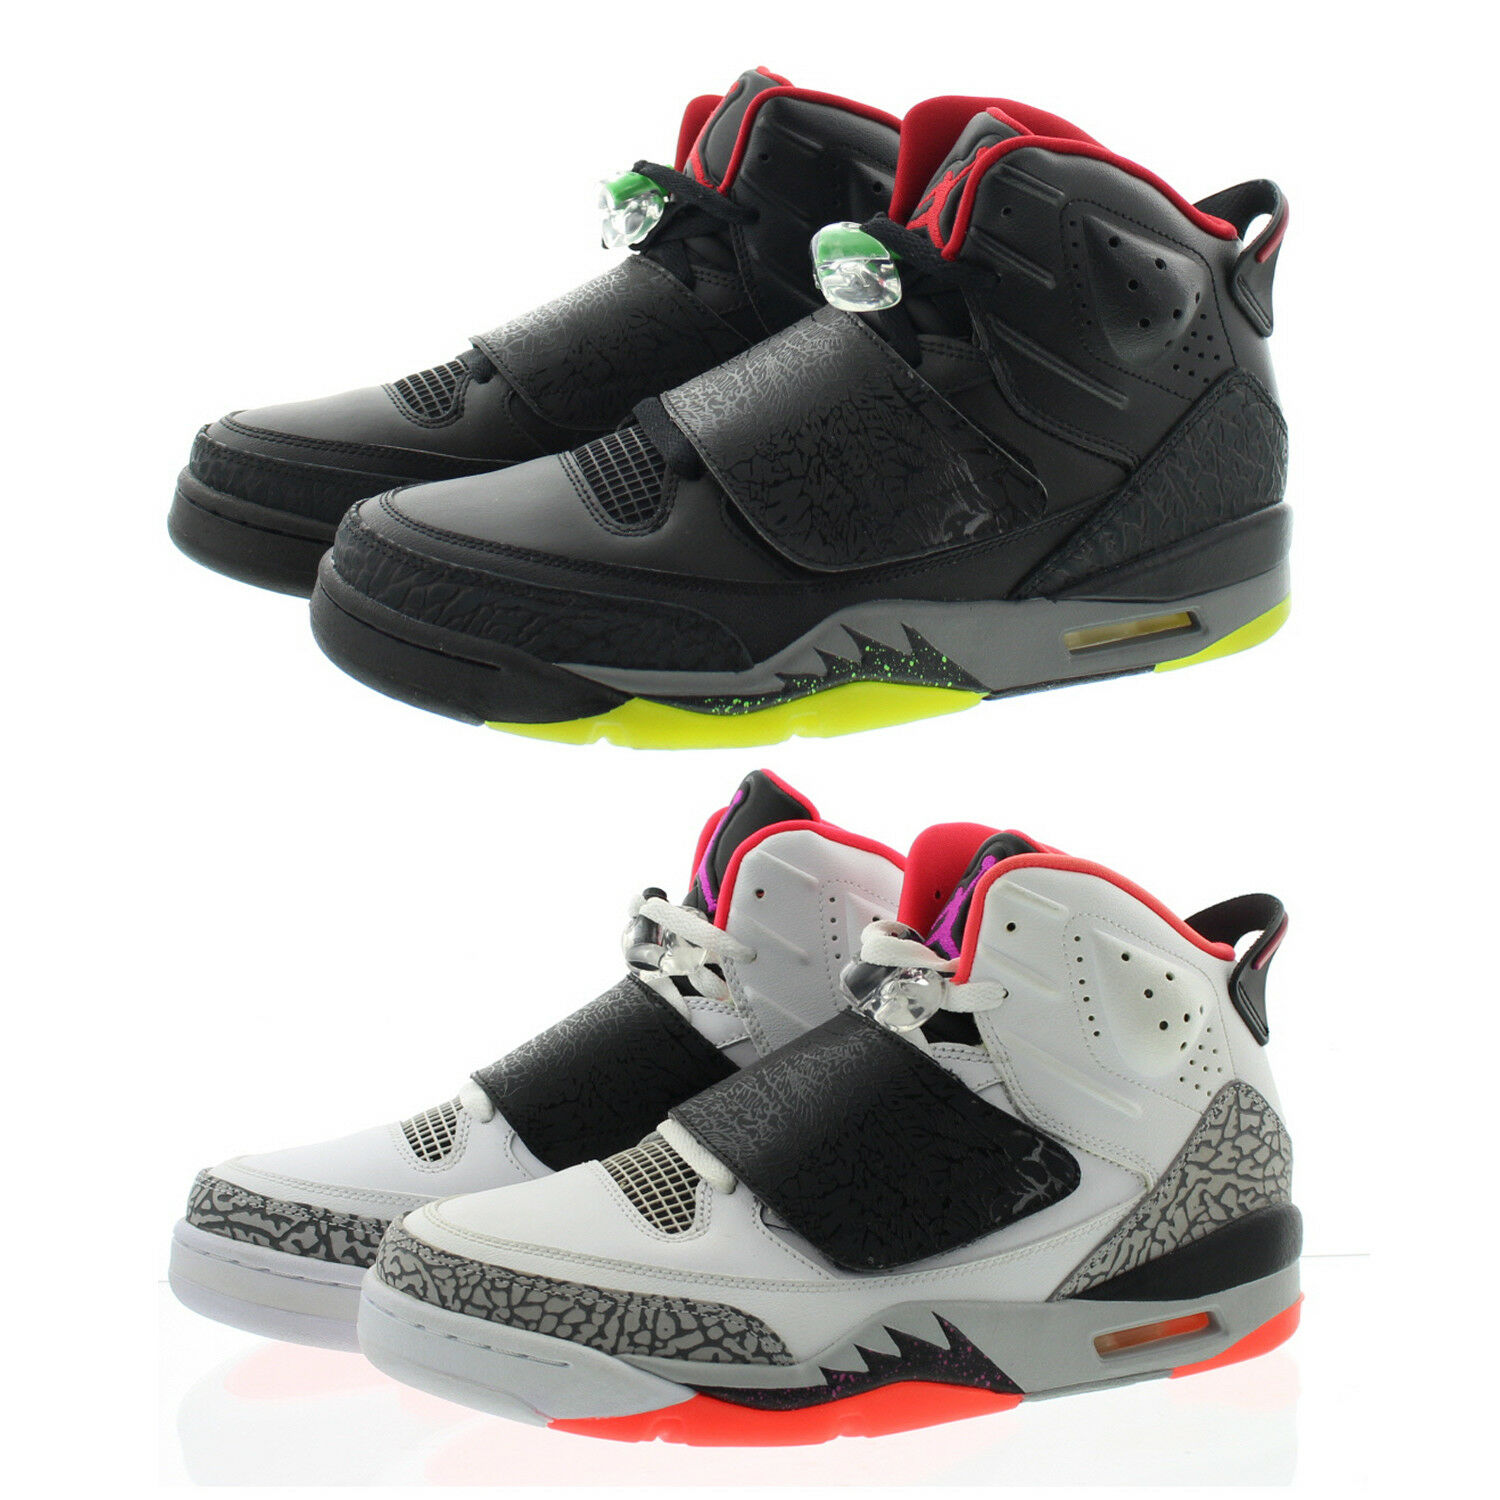 Nike 512245 Men's Air Jordan Son of Mars Basketball Mid Top Athletic Shoes New shoes for men and women, limited time discount